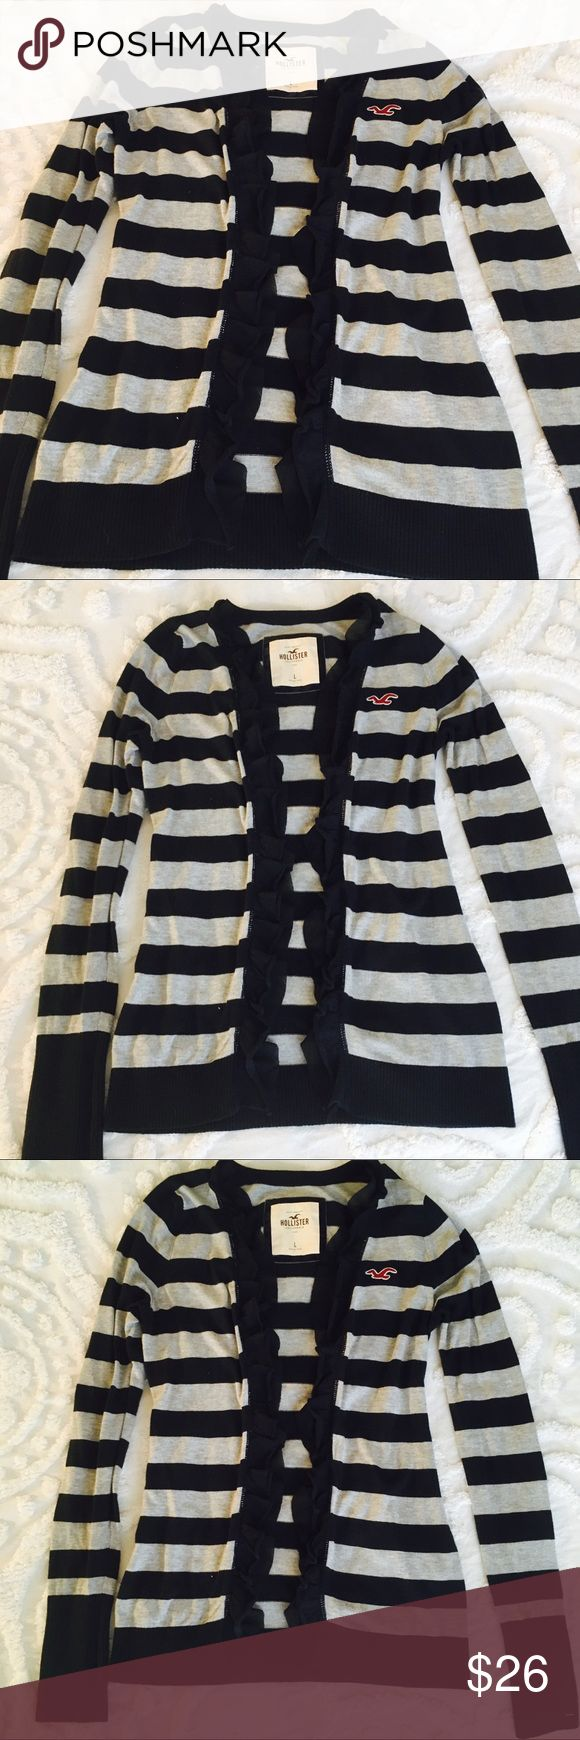 Hollister Ruffle Open Cardigan Super cute navy blue and gray rugby striped Ruffle trim sweater in excellent used condition Hollister Sweaters Cardigans